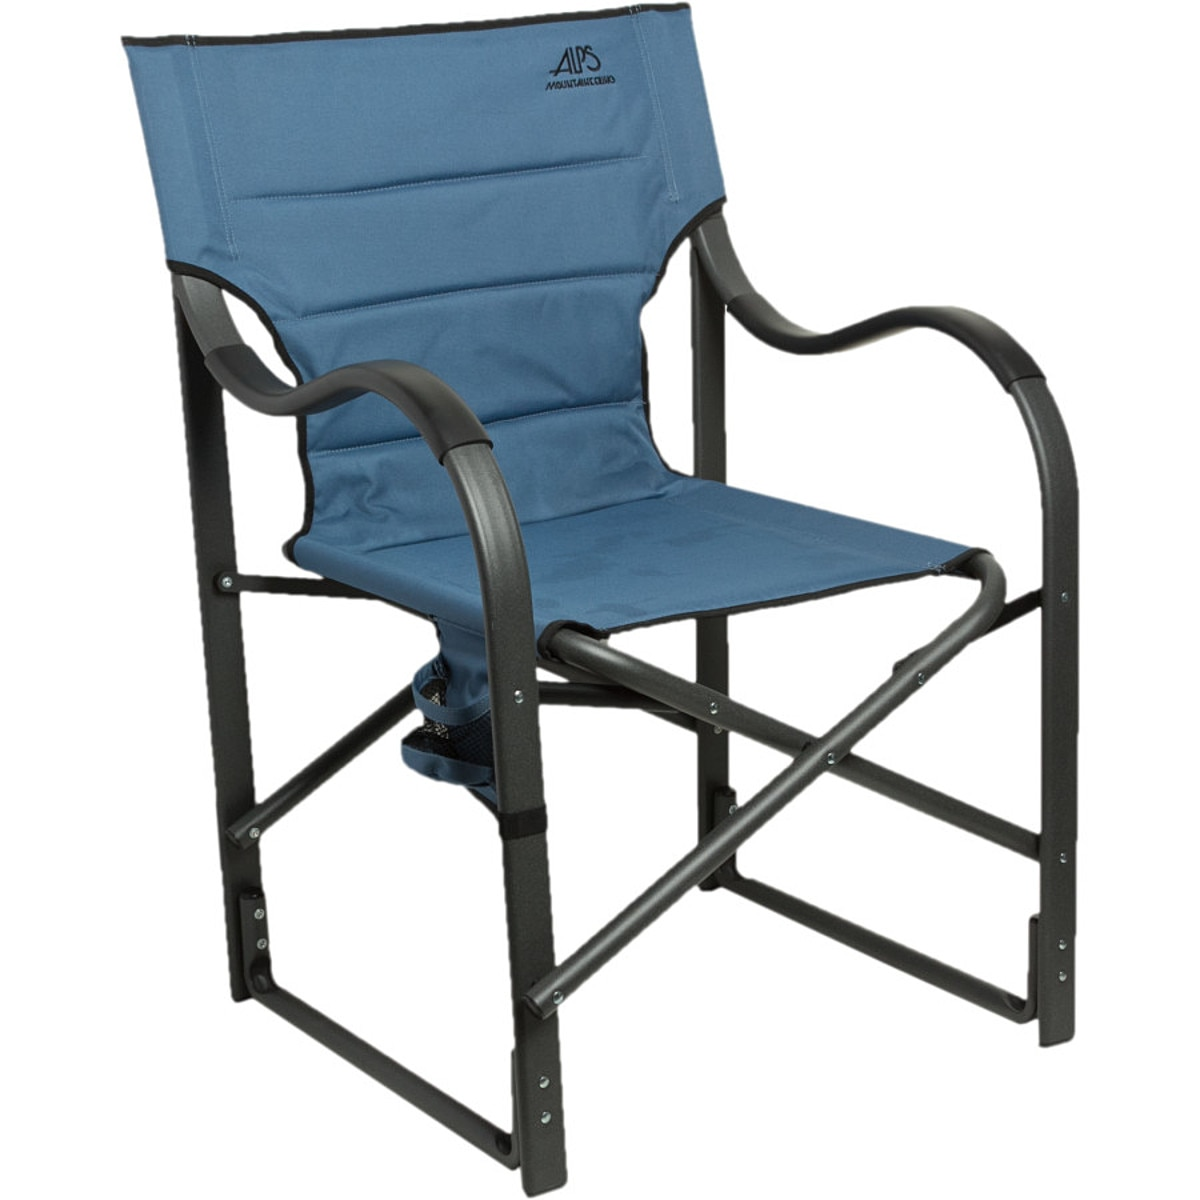 Kelty Low Love Chair Alps Mountaineering Camp Chair